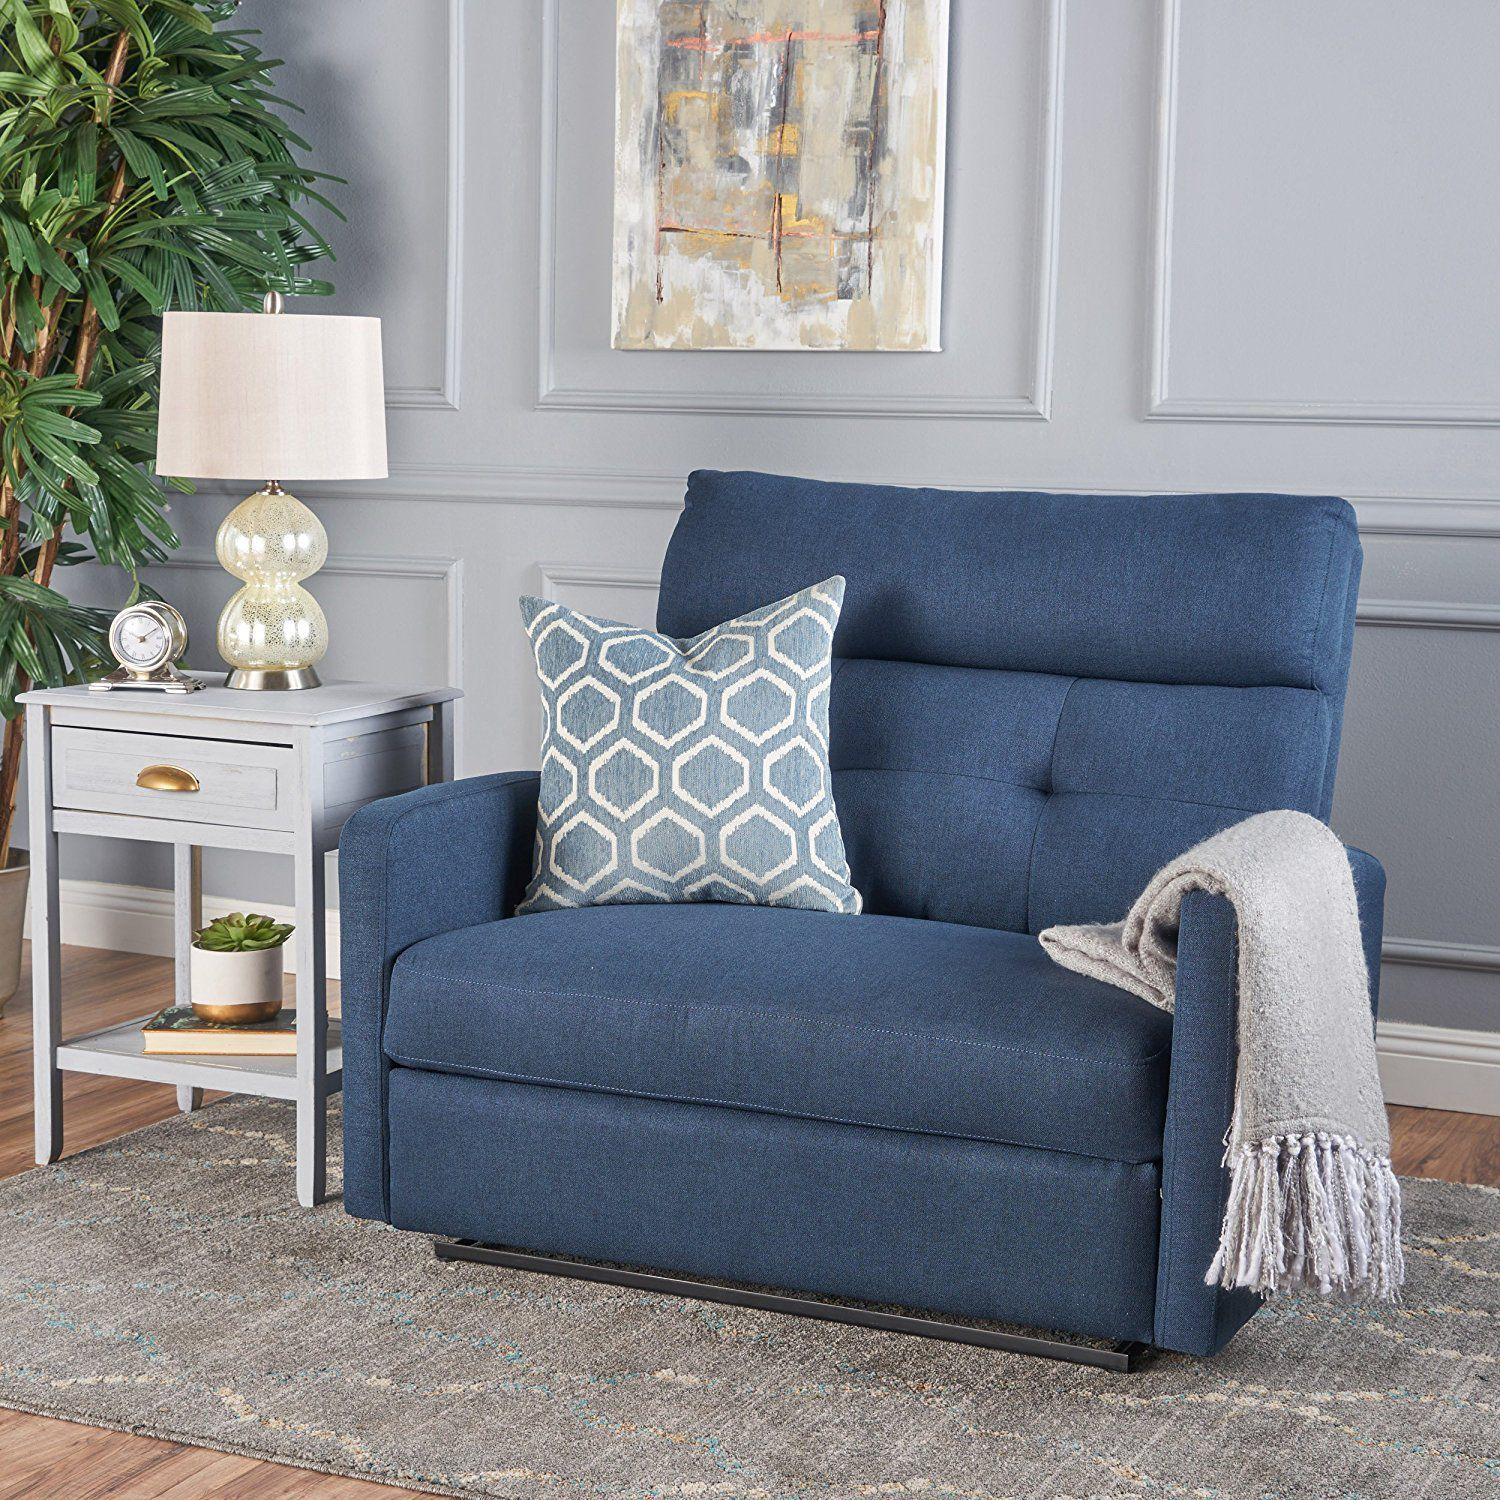 Incredible The 7 Best Reclining Loveseats Of 2019 In 2019 Decorating Gmtry Best Dining Table And Chair Ideas Images Gmtryco